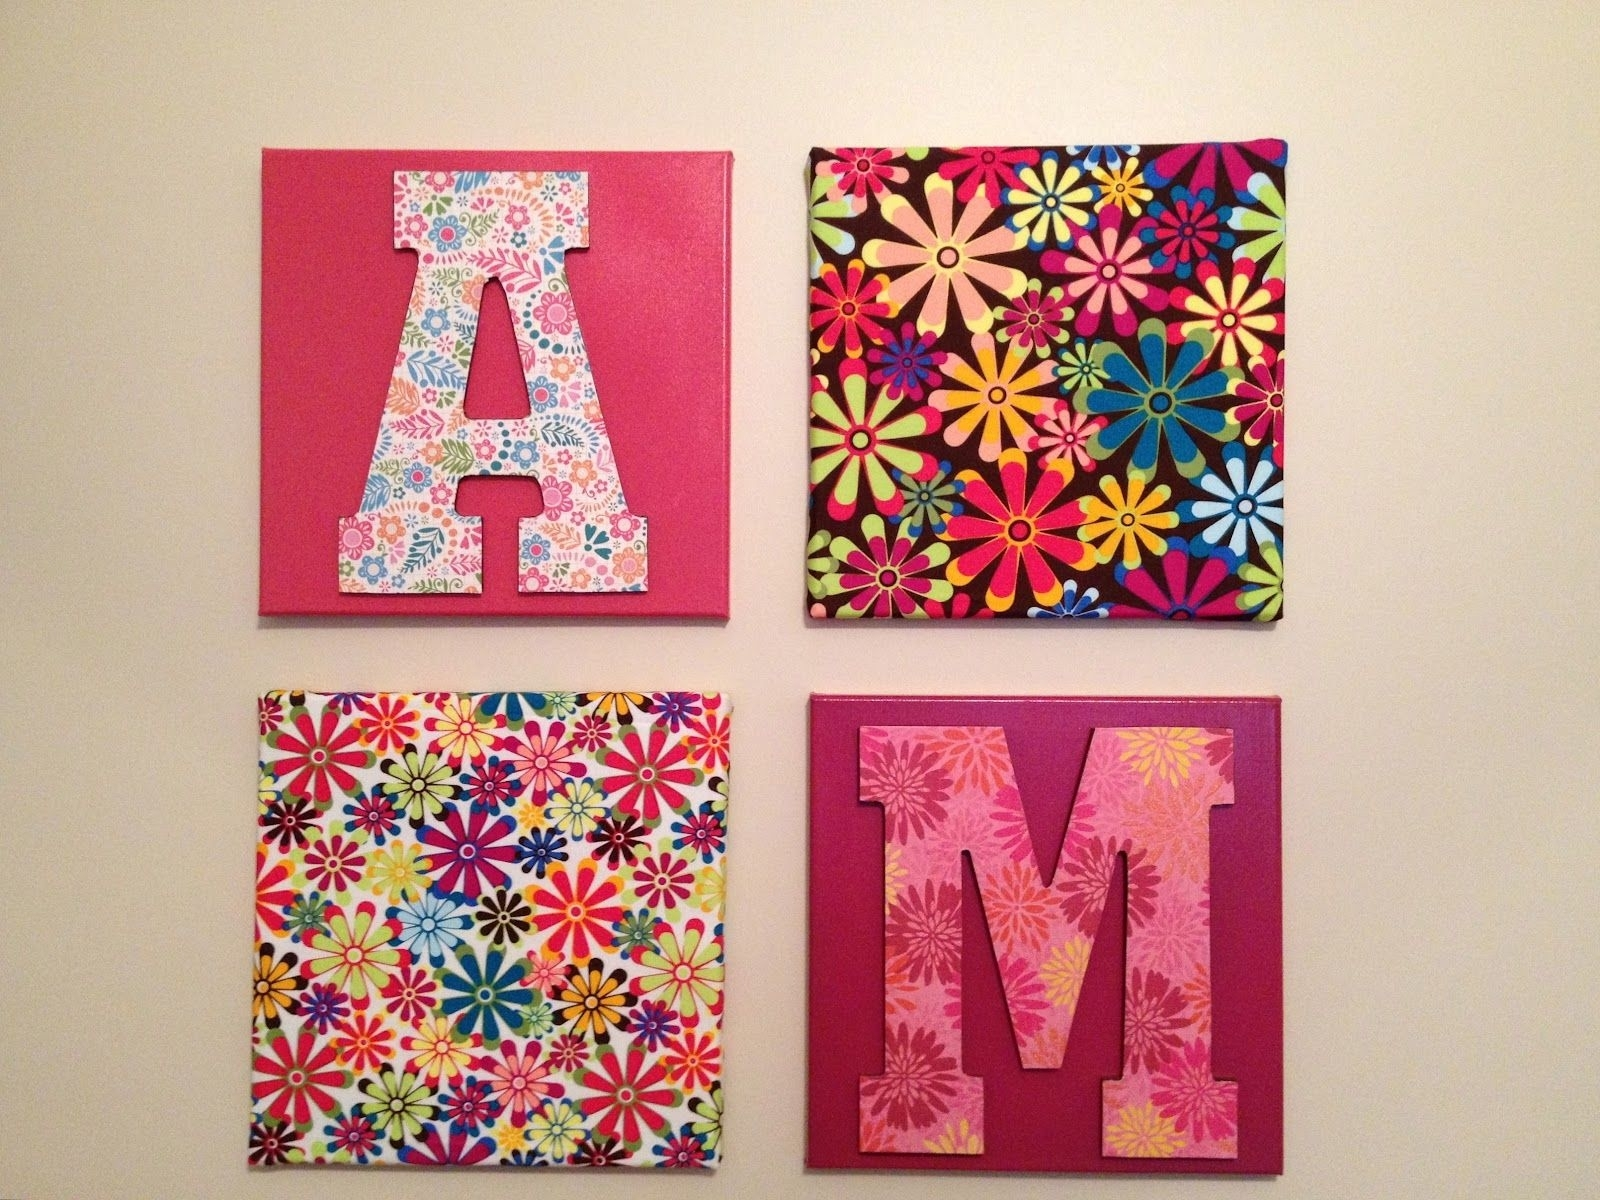 Craft Ideas For Girls | Living Unbound: Diy Easy Wall Hanging Throughout 2018 Mod Podge Fabric Wall Art (View 9 of 15)